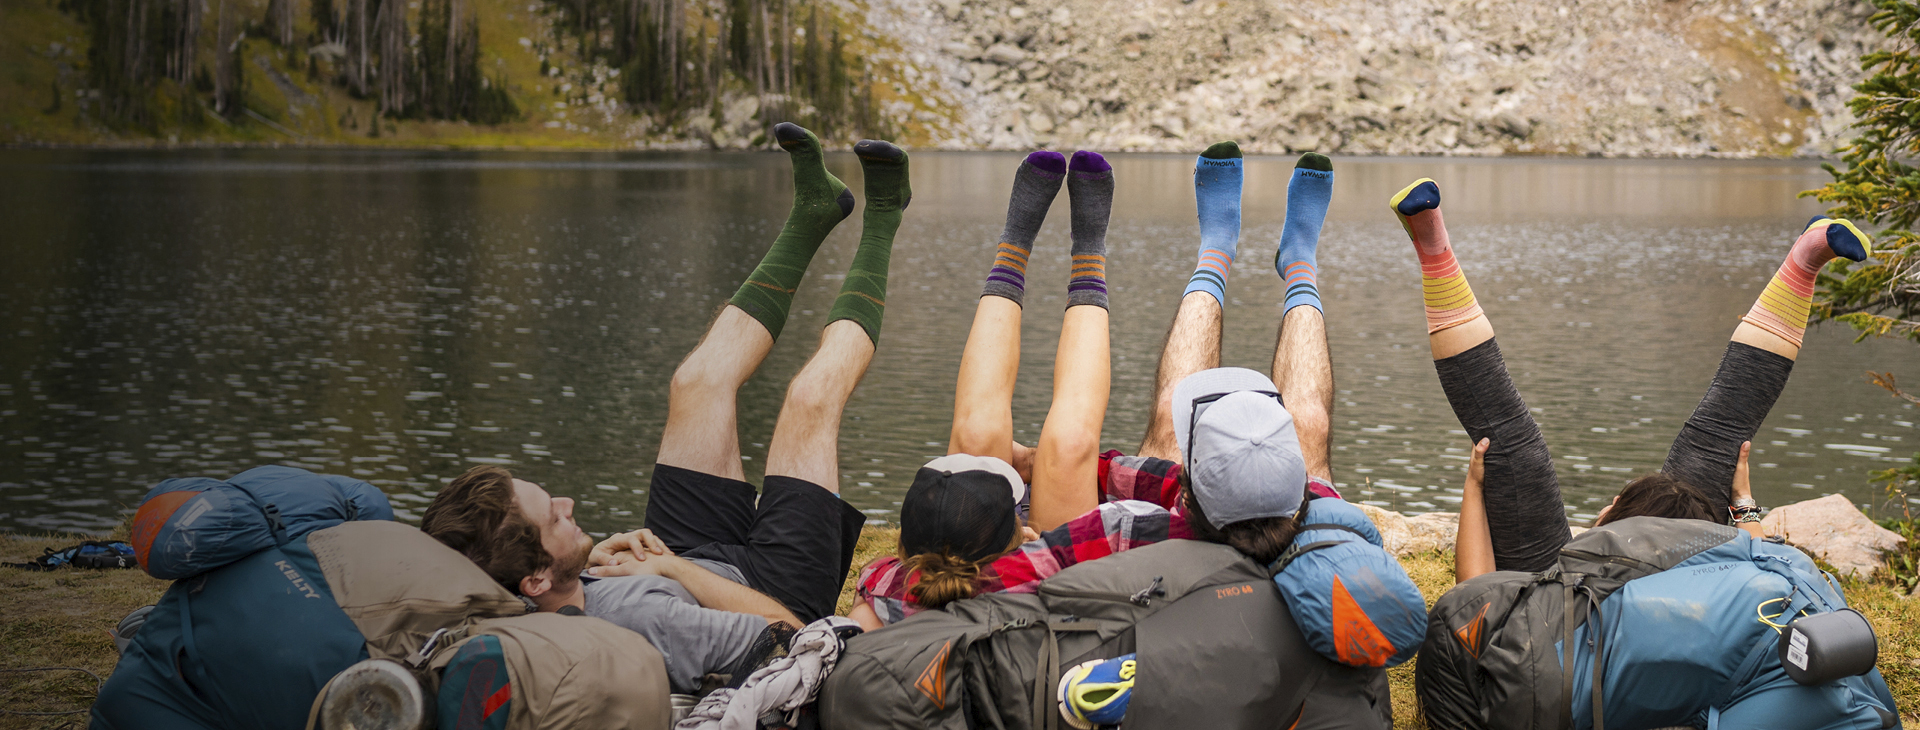 Group of campers lying down with their feet up in the air